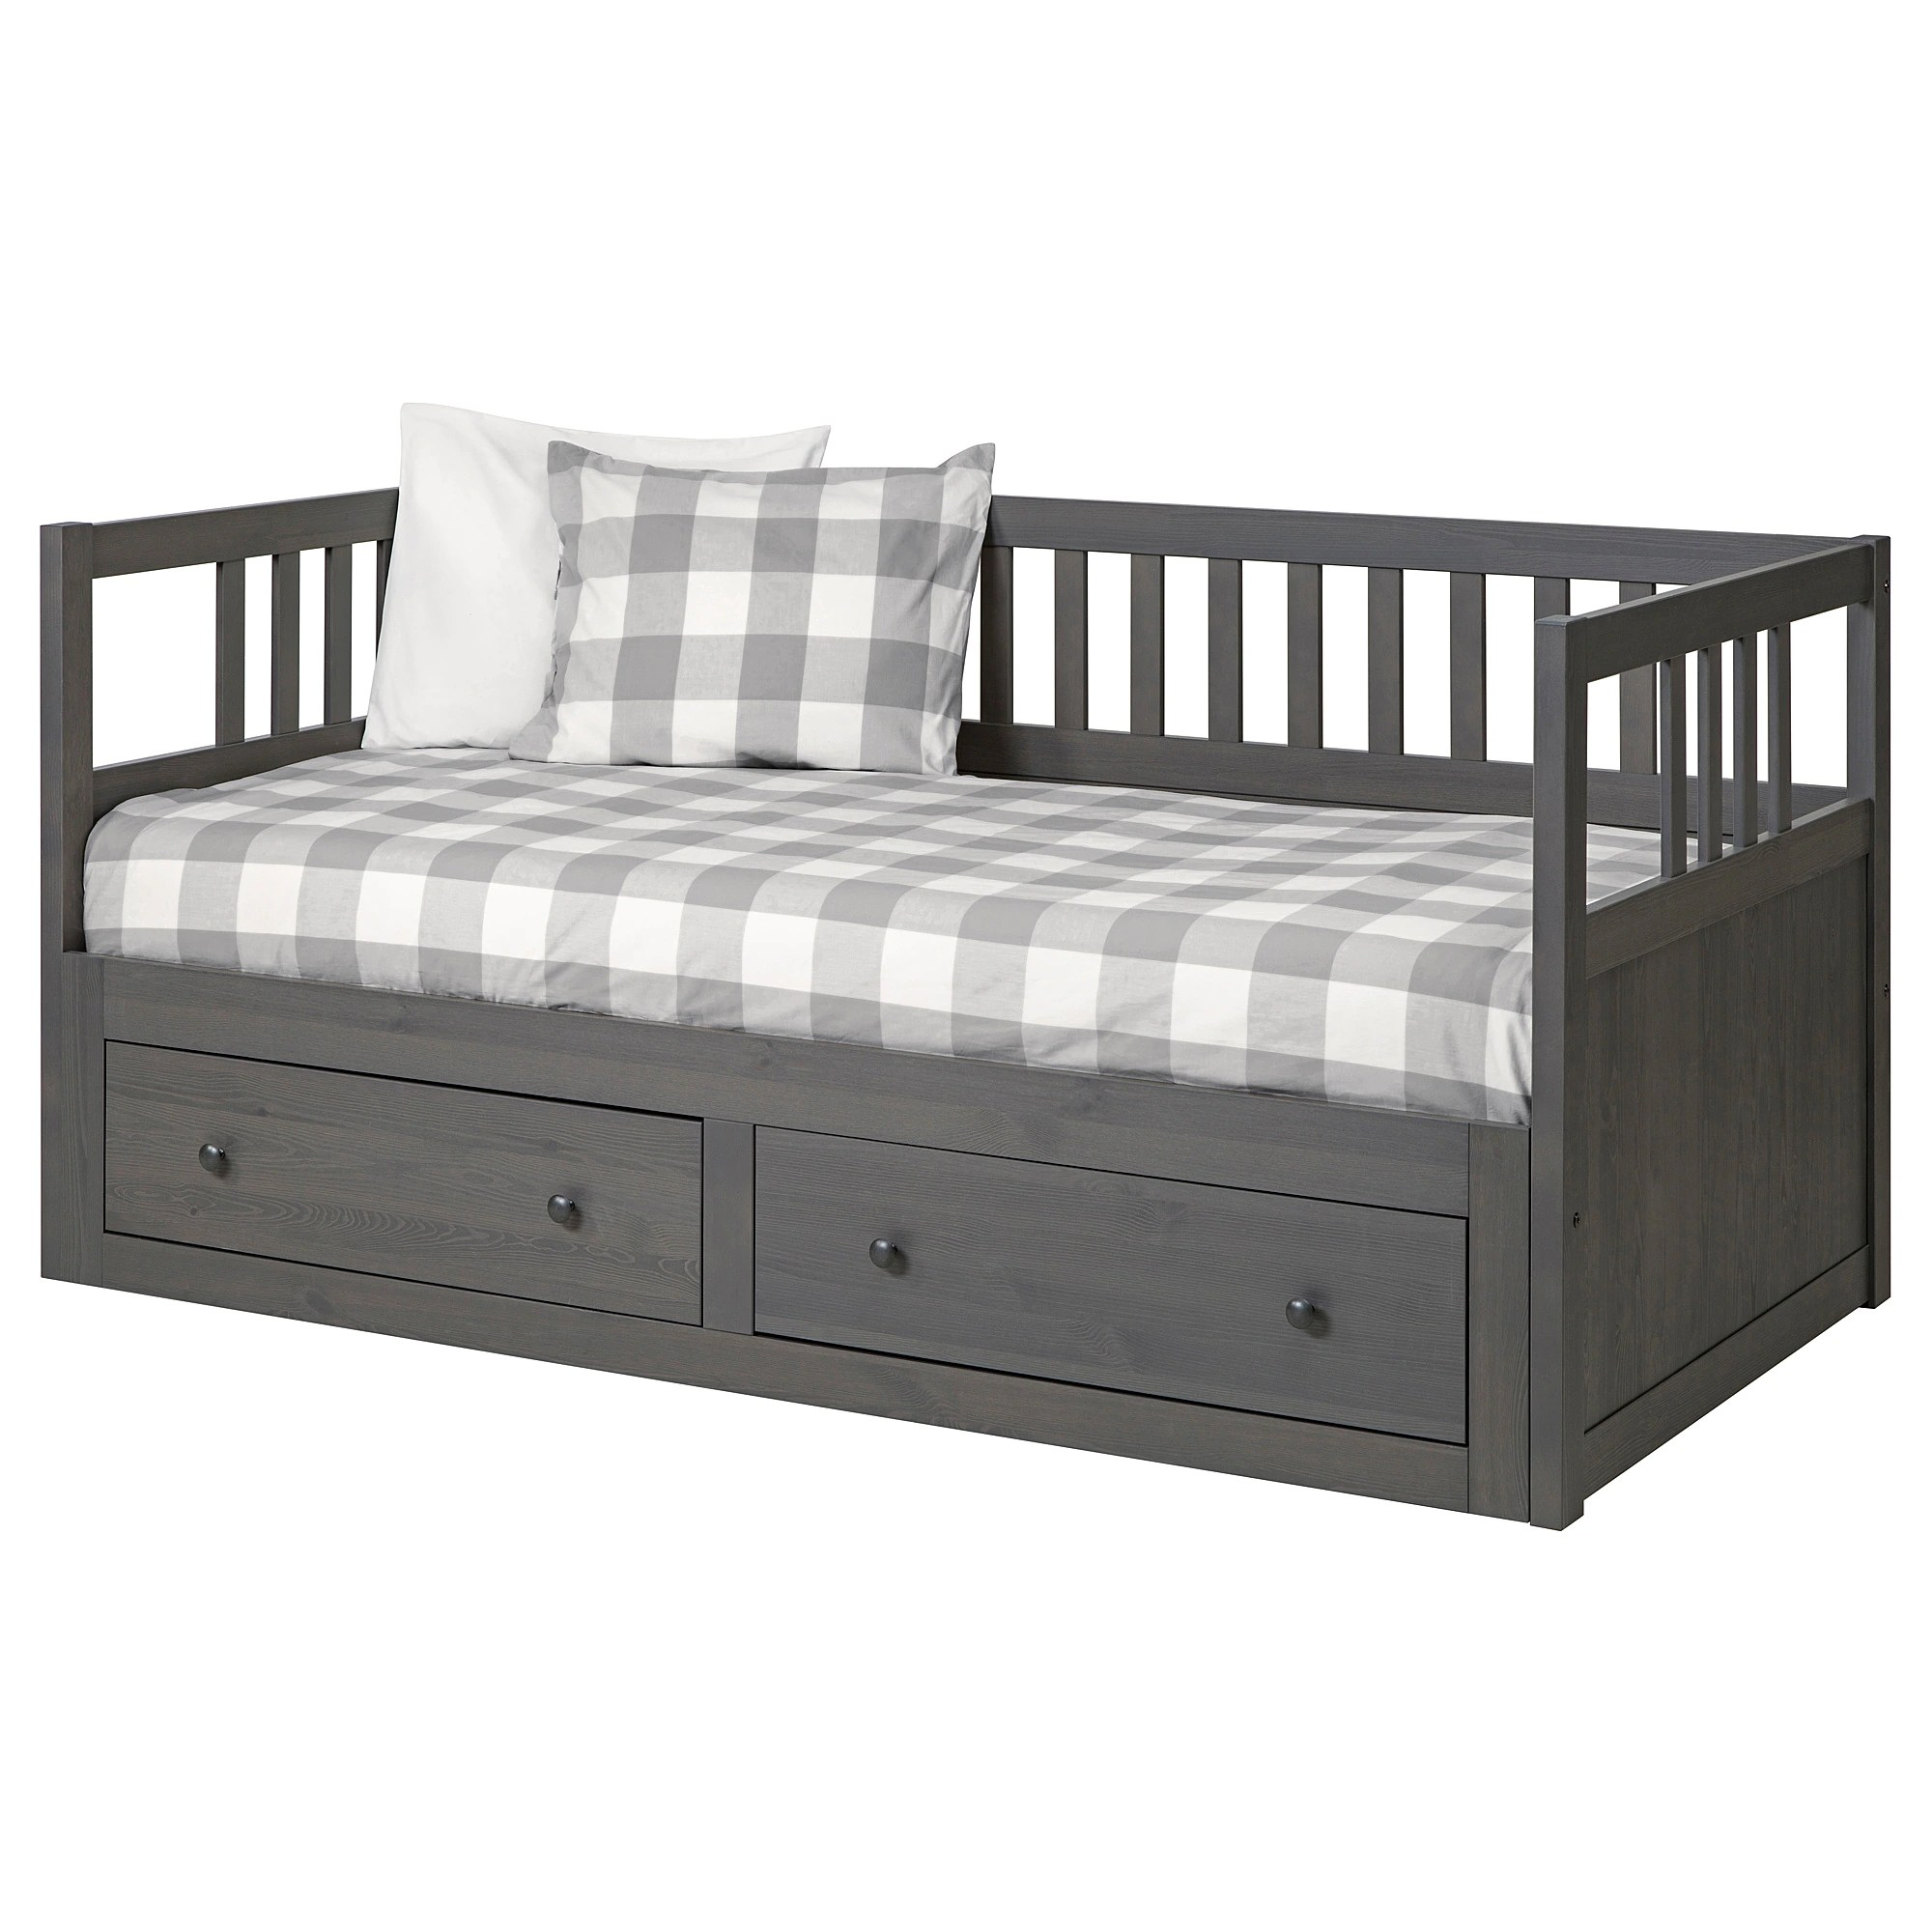 King Single Bed With Drawers Hemnes Daybed Frame With Storage Dark Gray Stained